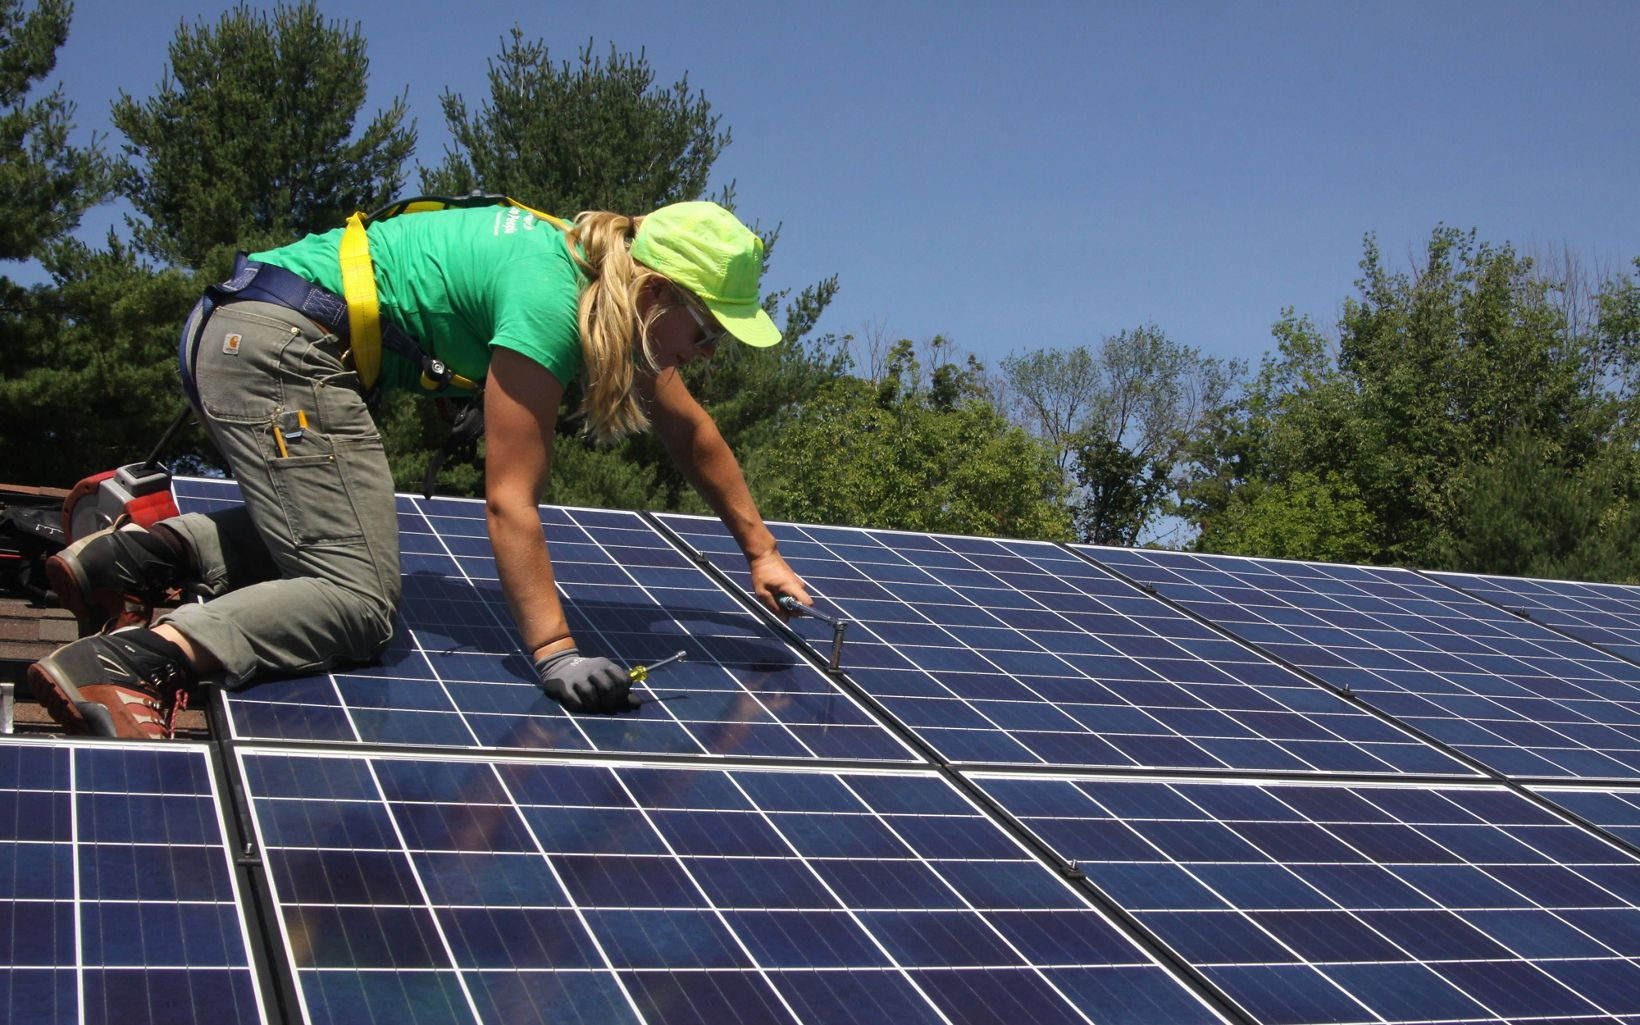 A worker kneels on a roof installing solar panels.